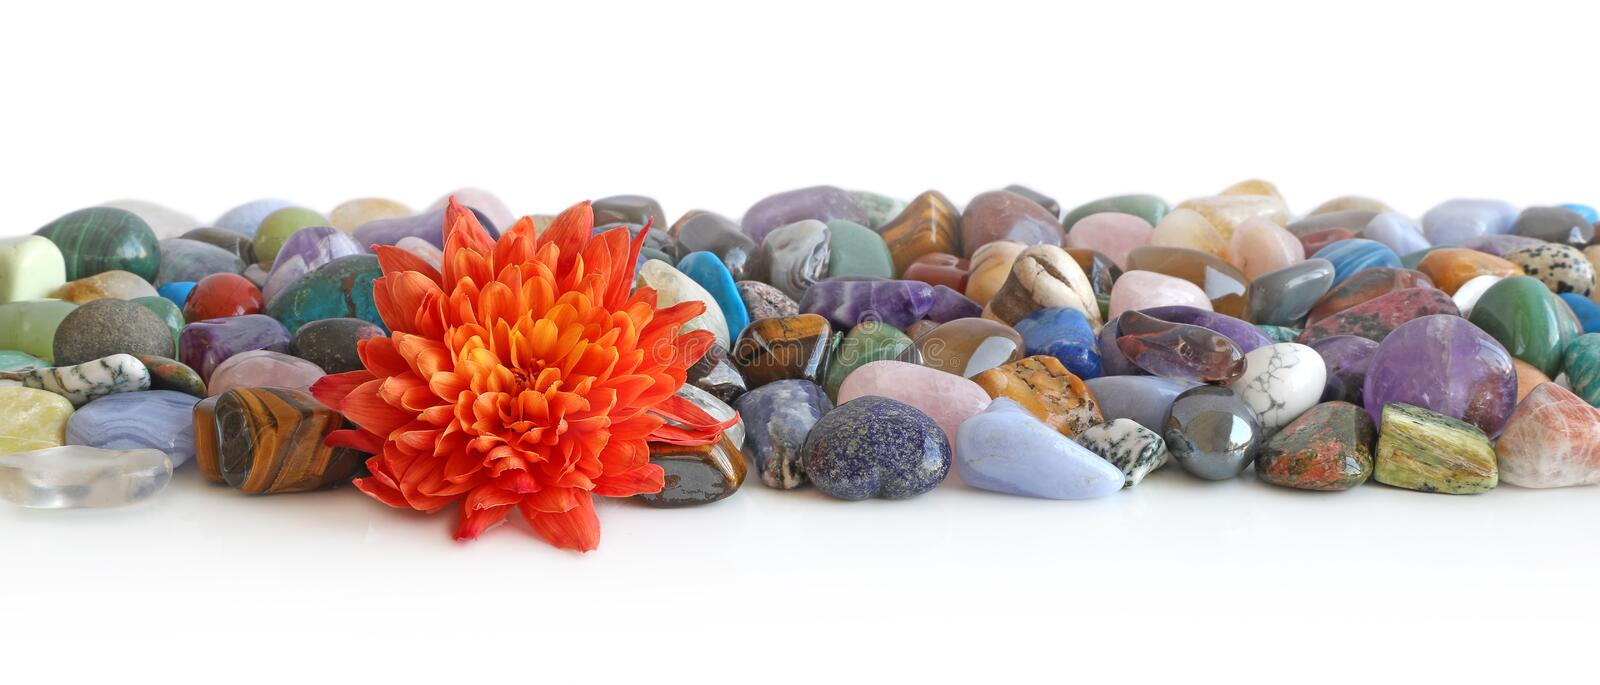 Lone flower head and healing crystals header stock images